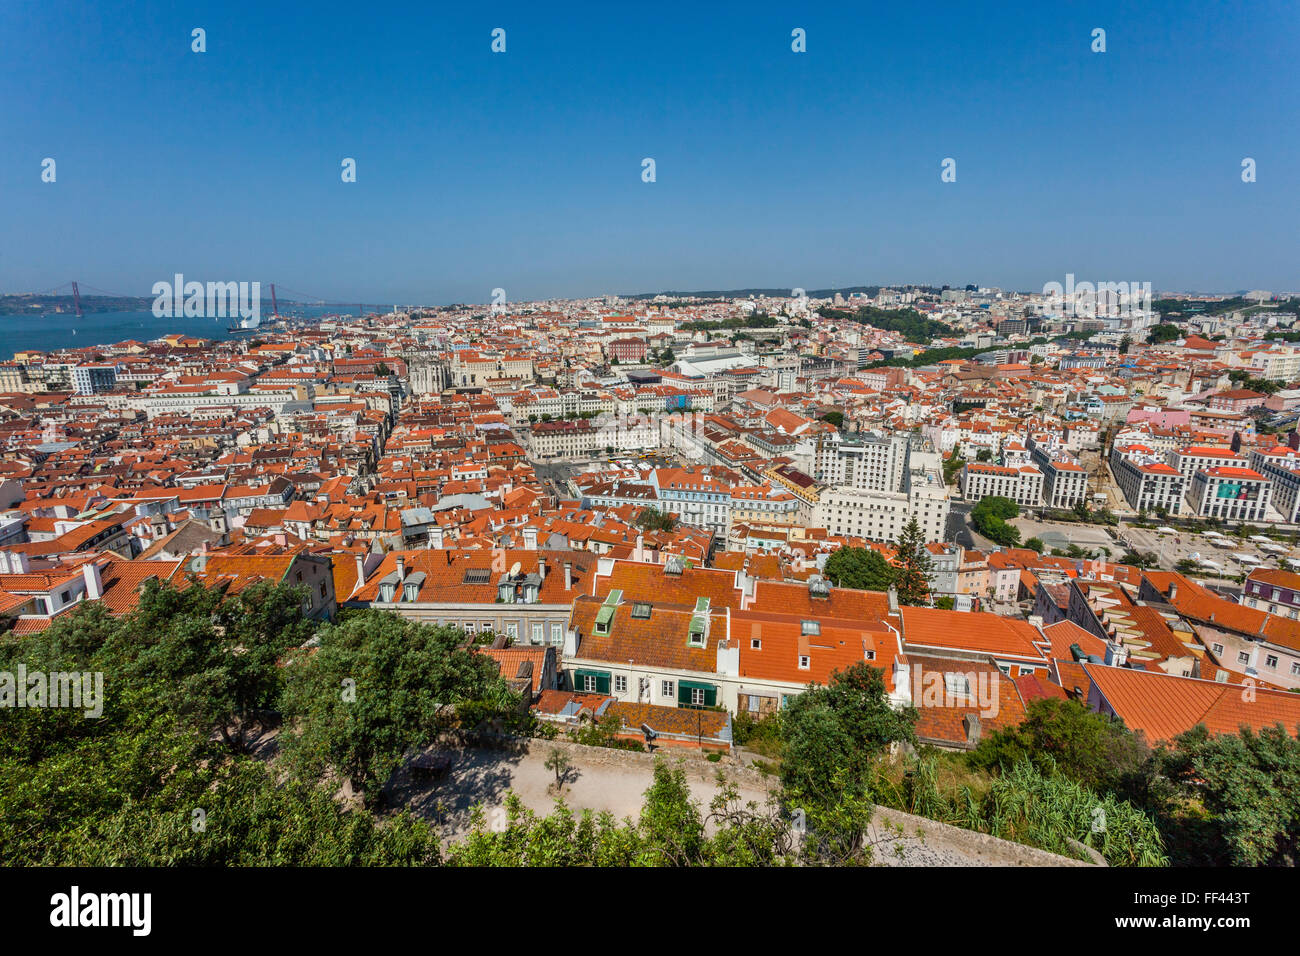 Portugal, Lisbon, view of the Baixa Pombaline, the Pombaline Downtown of Lisbon from Castelo Sao Jorge - Stock Image